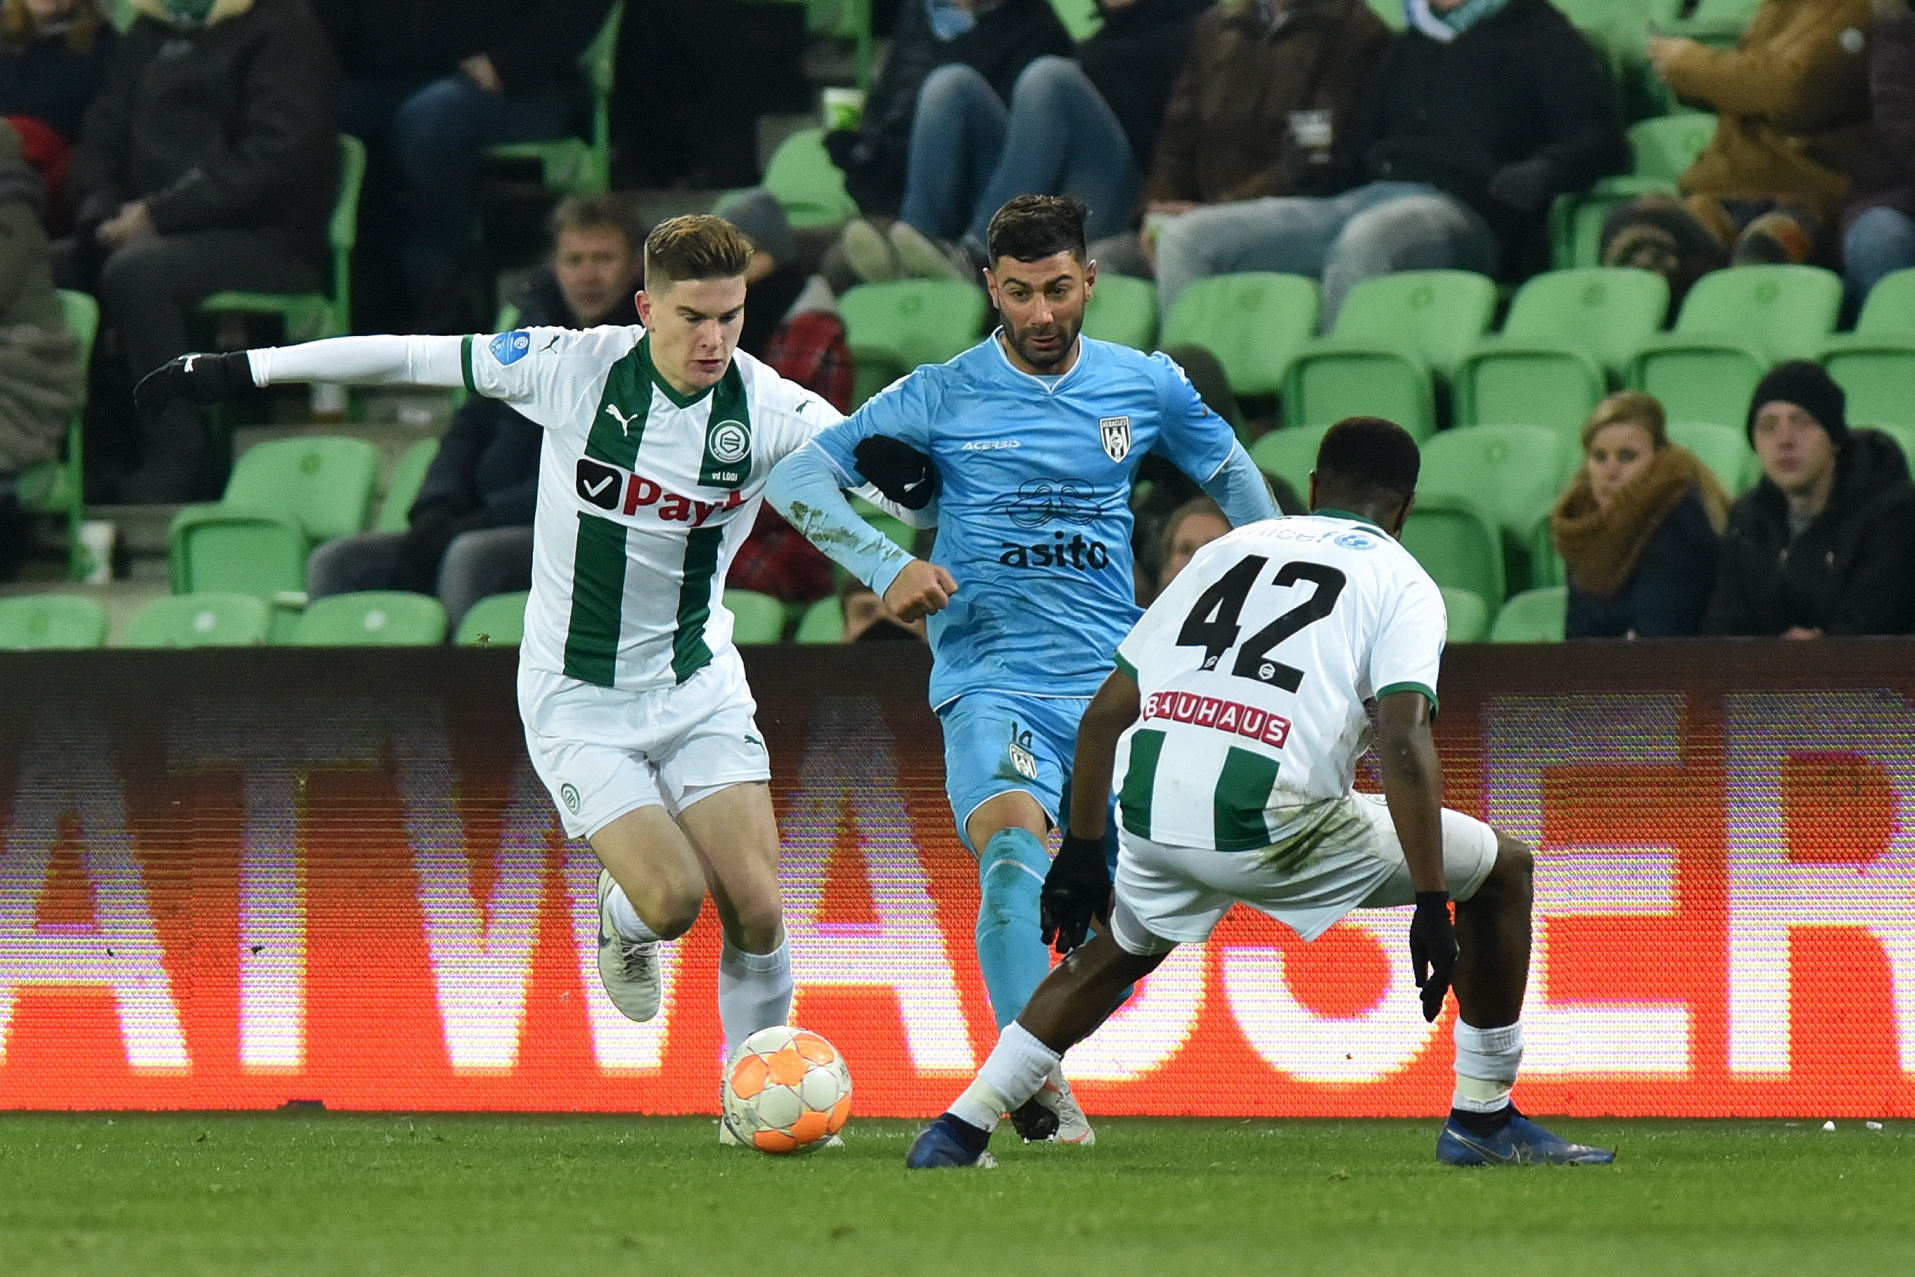 FC Groningen - Heracles Almelo in beeld - Heracles